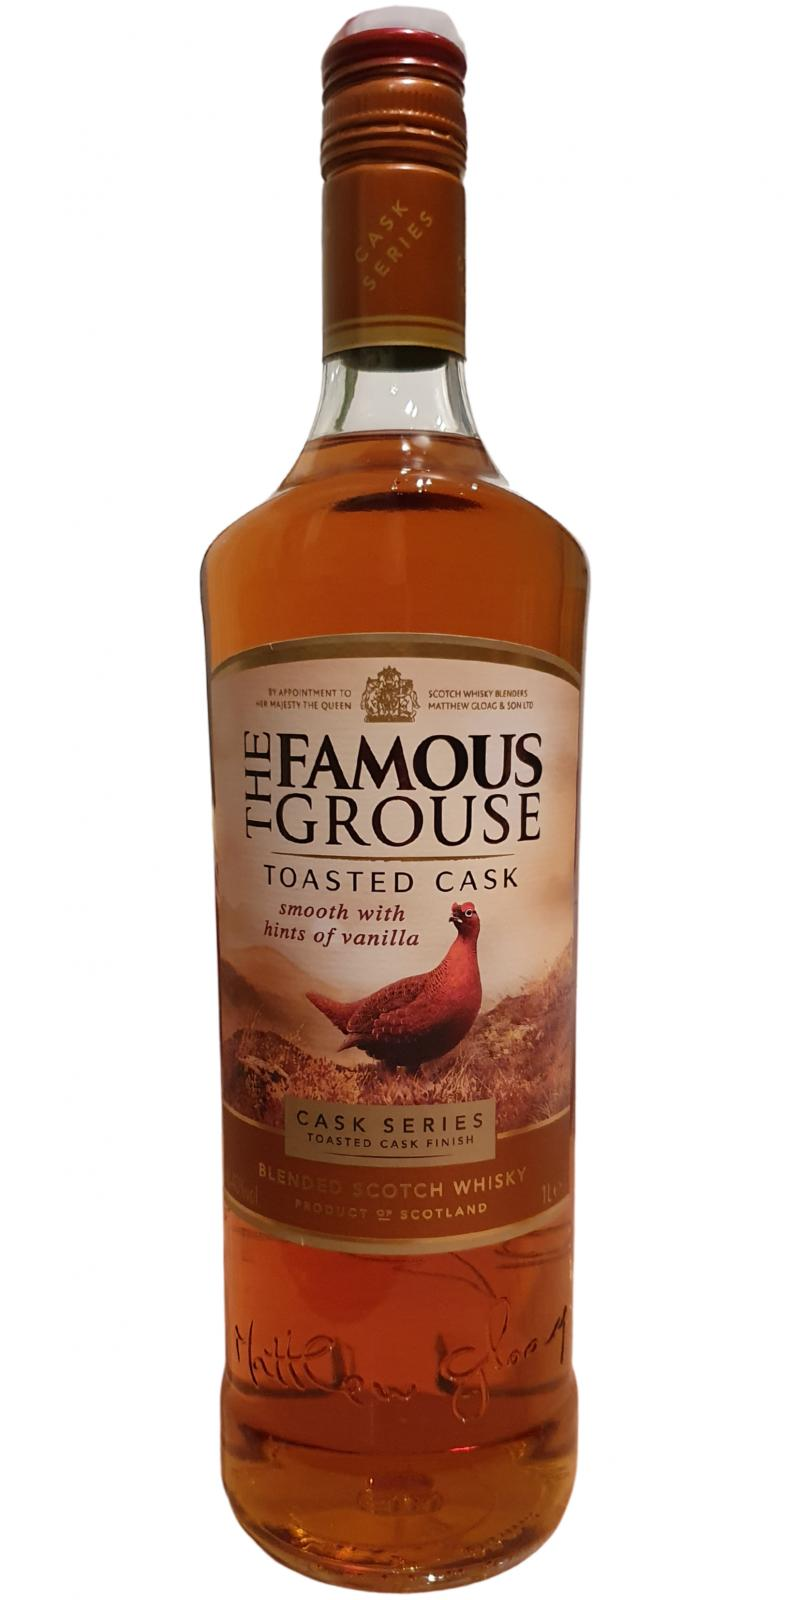 The Famous Grouse Toasted Cask